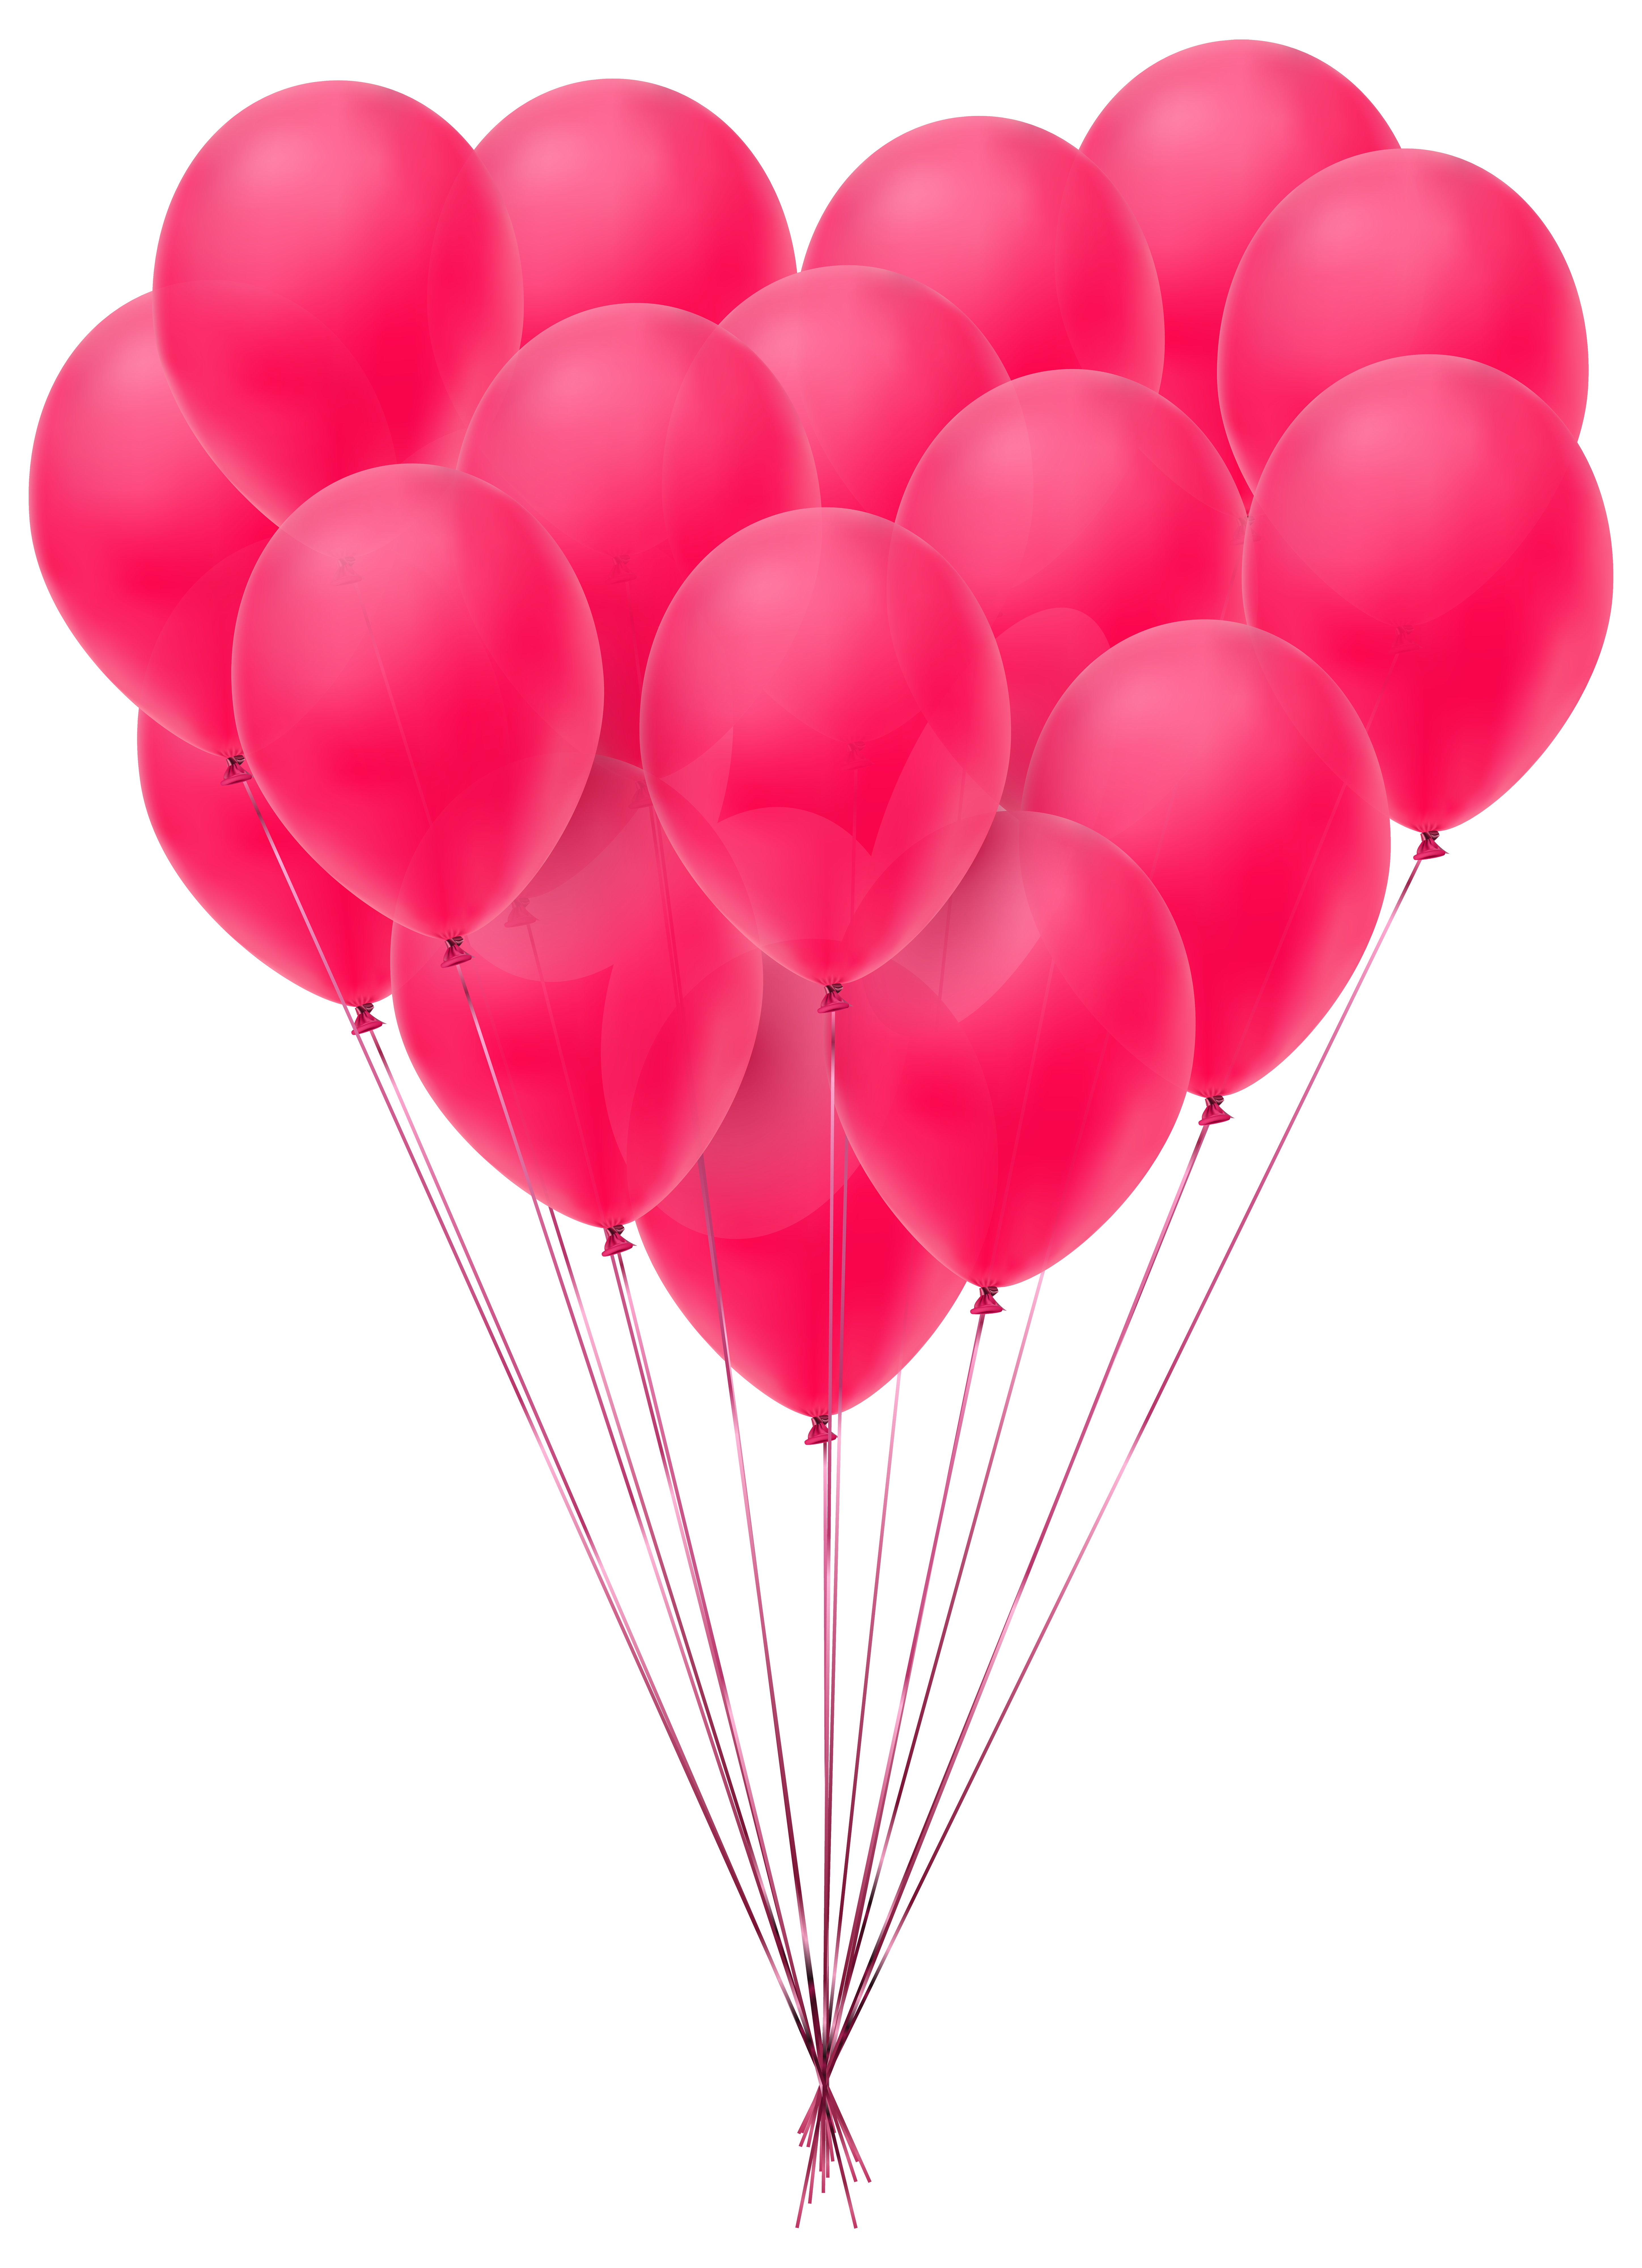 valentines day clipart transparent clipground